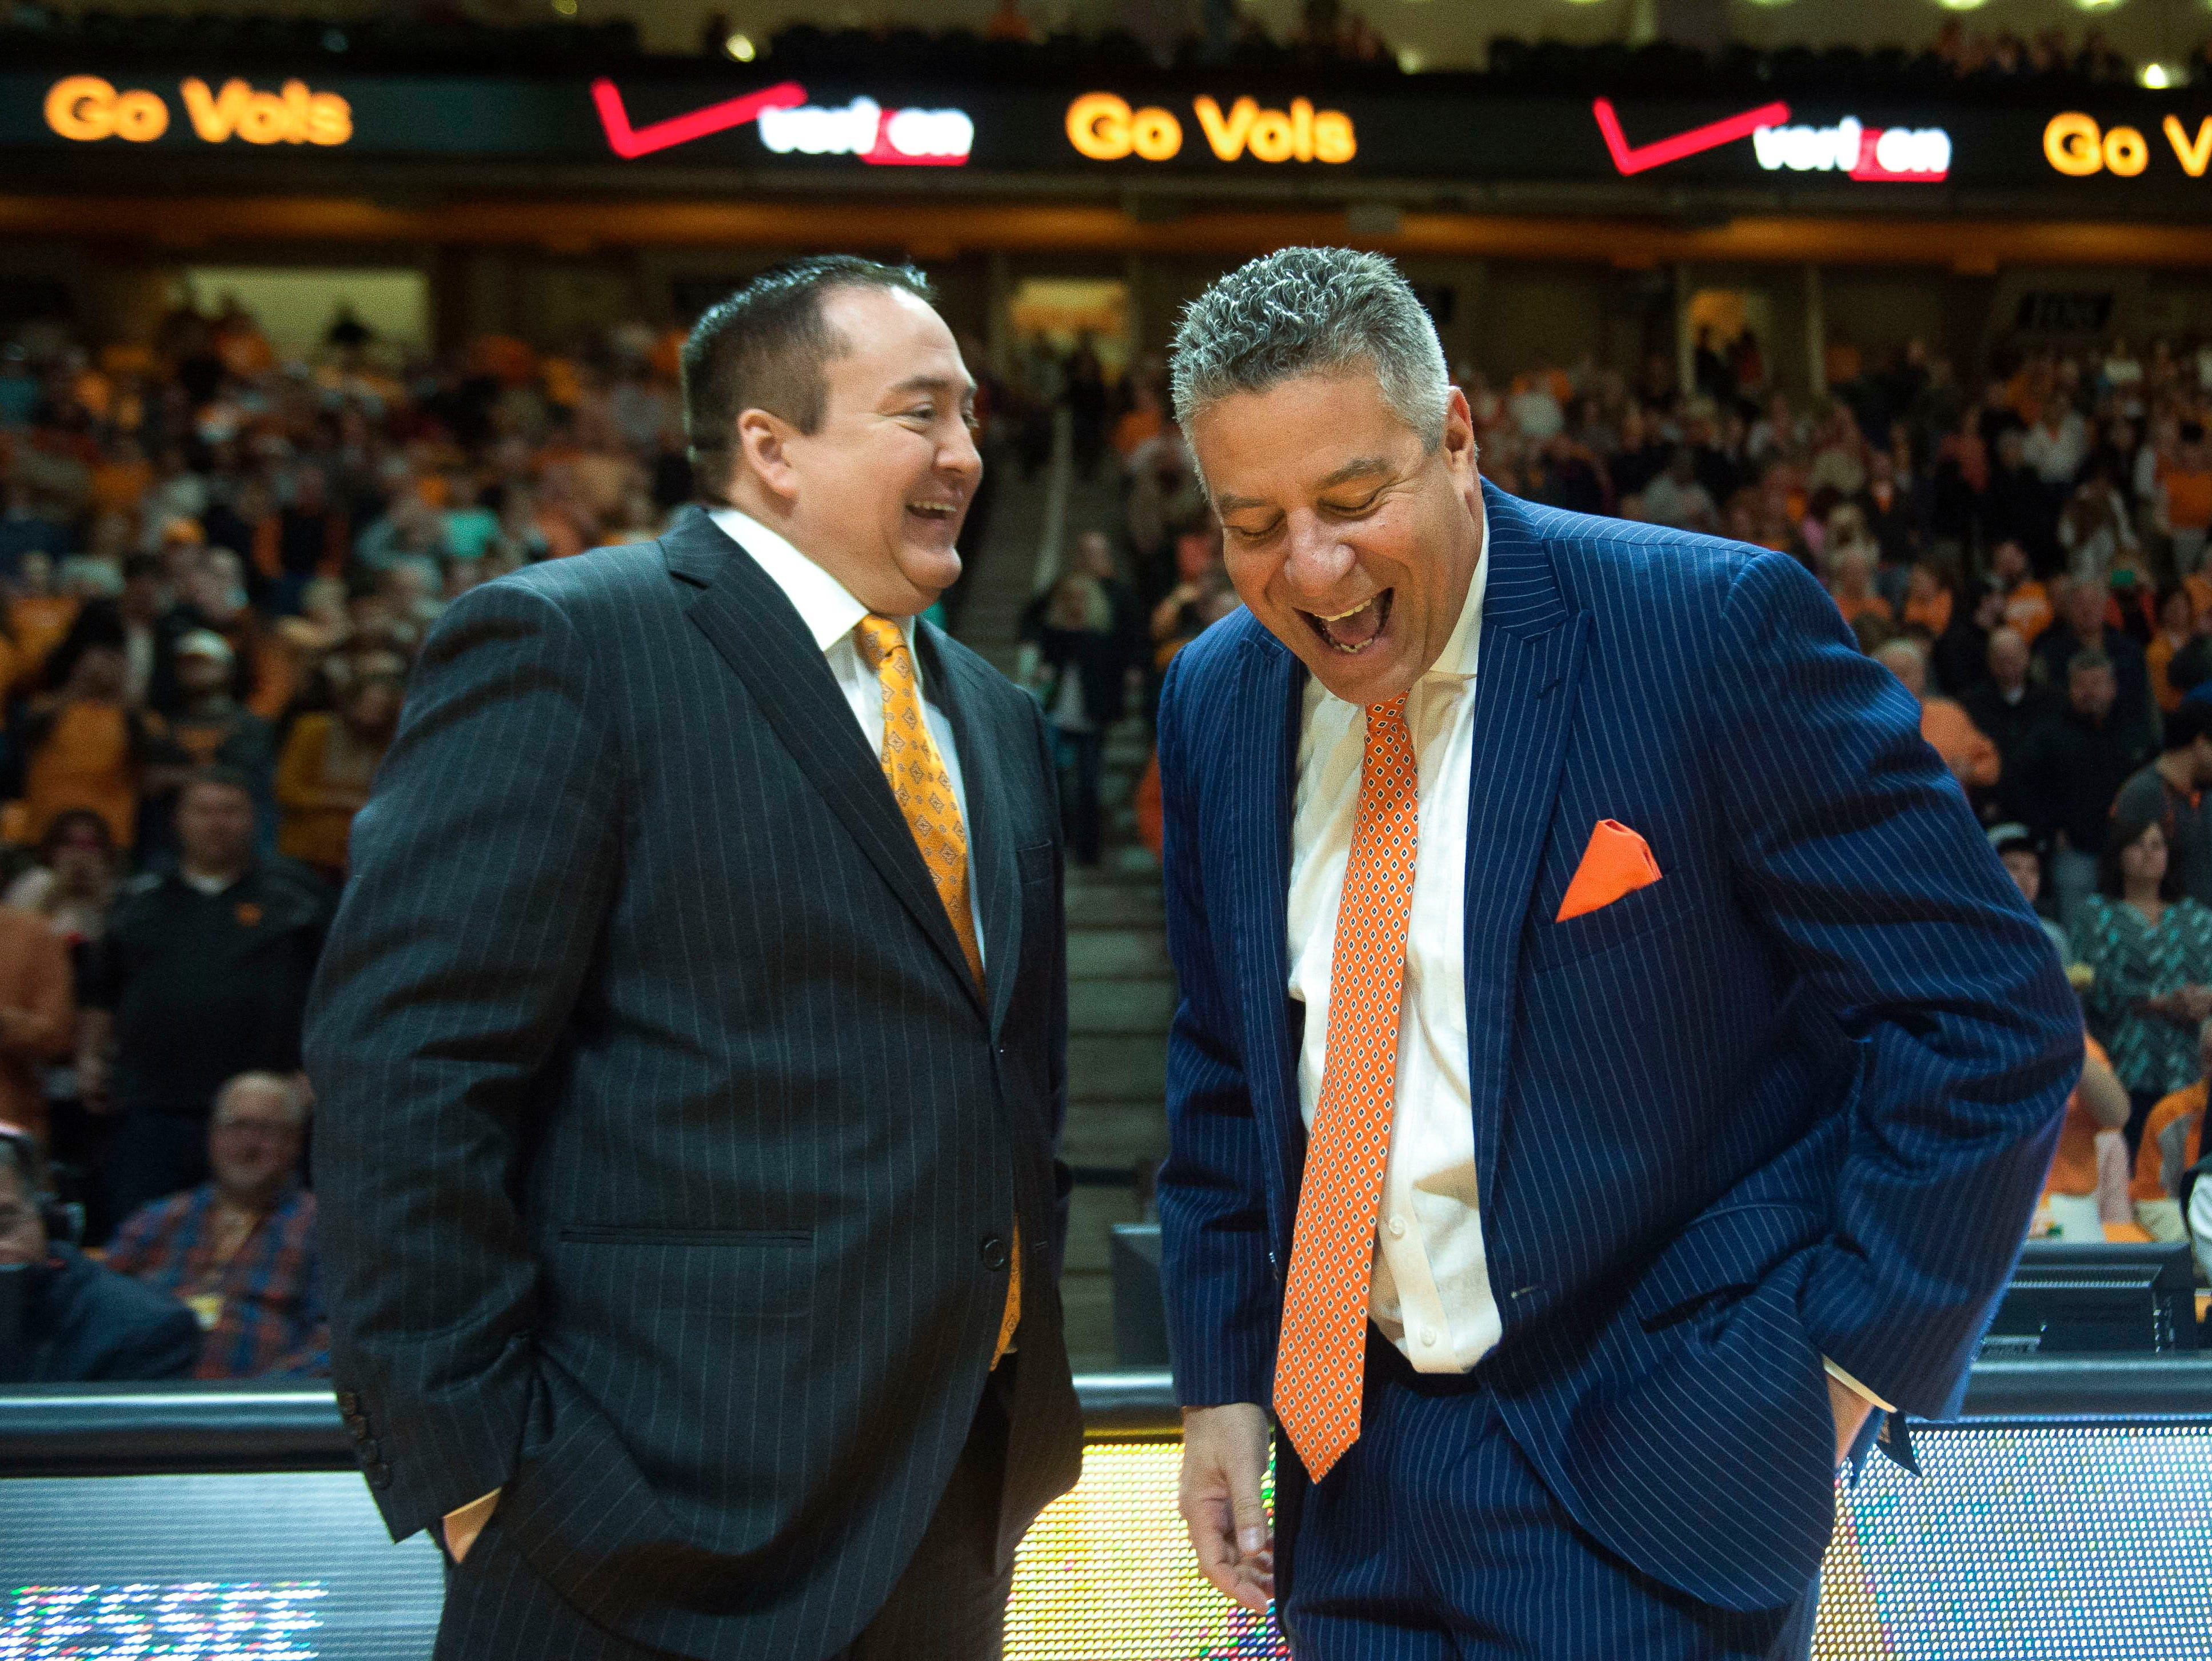 Tennessee head coach Donnie Tyndall and Auburn head coach Bruce Pearl share a laugh at center court before the Tennessee-Auburn game at Thompson-Boling Arena in Knoxville on Saturday, Jan. 31, 2015.